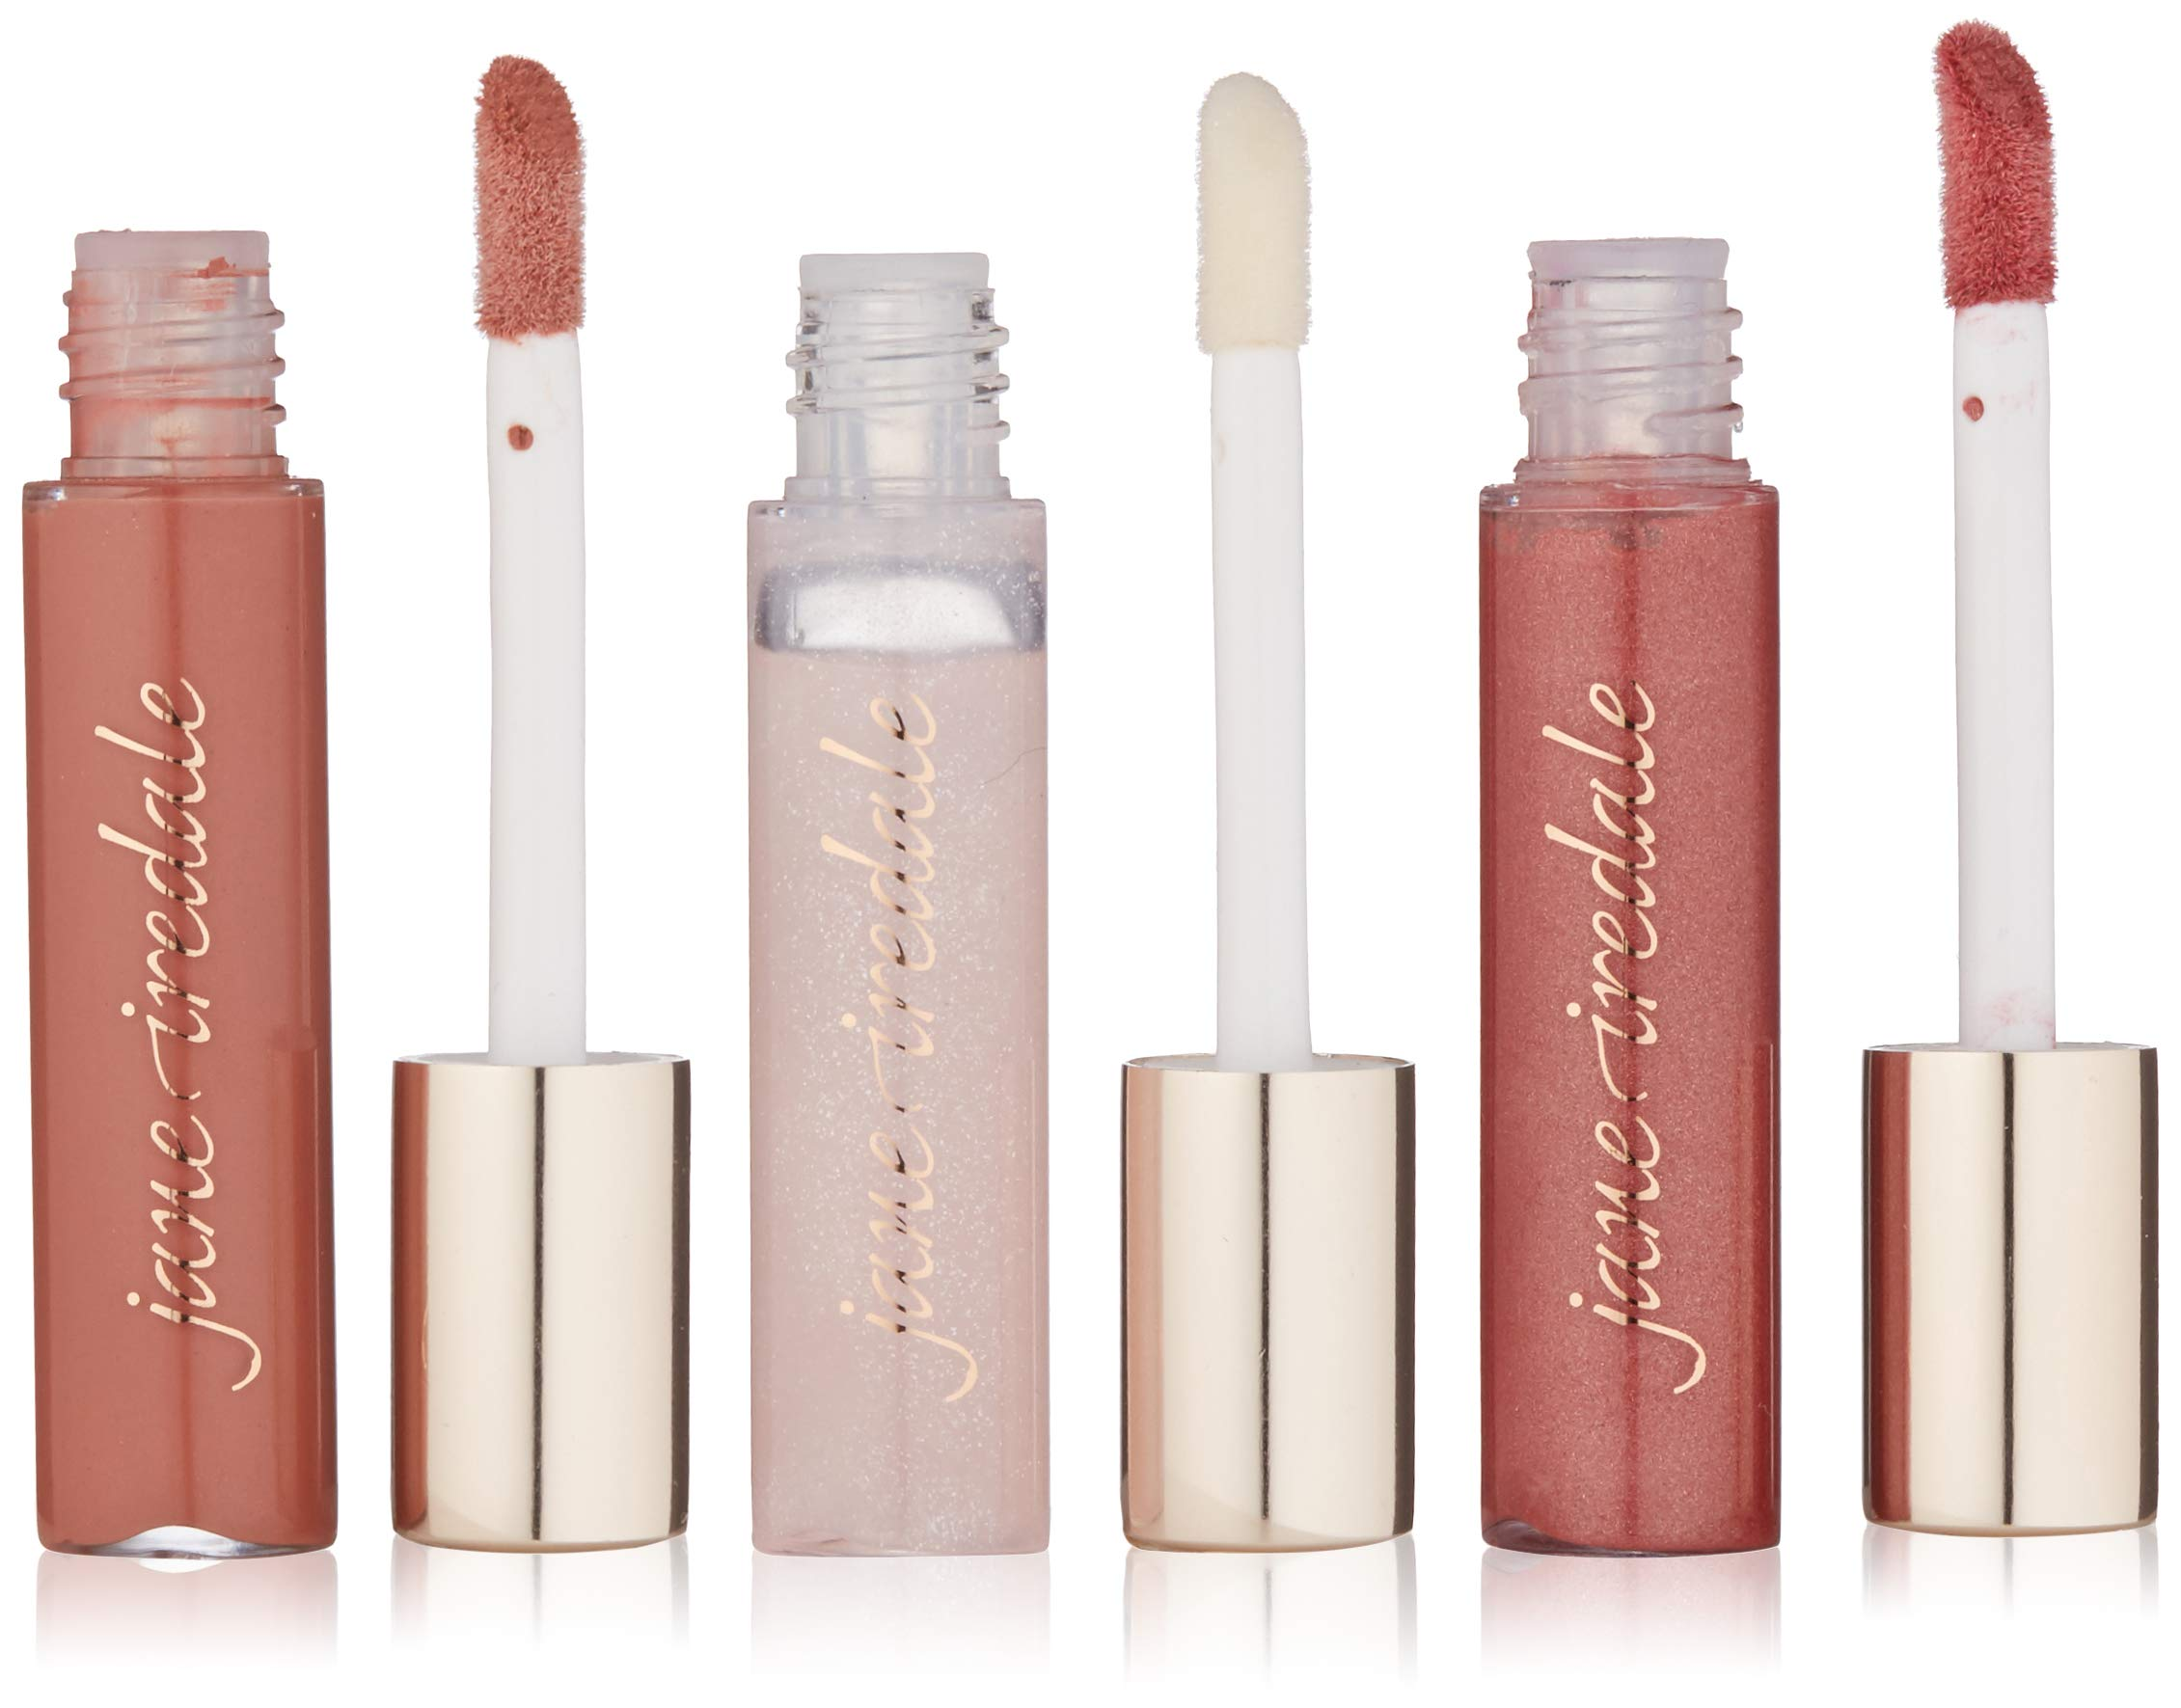 jane iredale Limited Edition Kiss and Tell Lip Stain/Gloss Kit